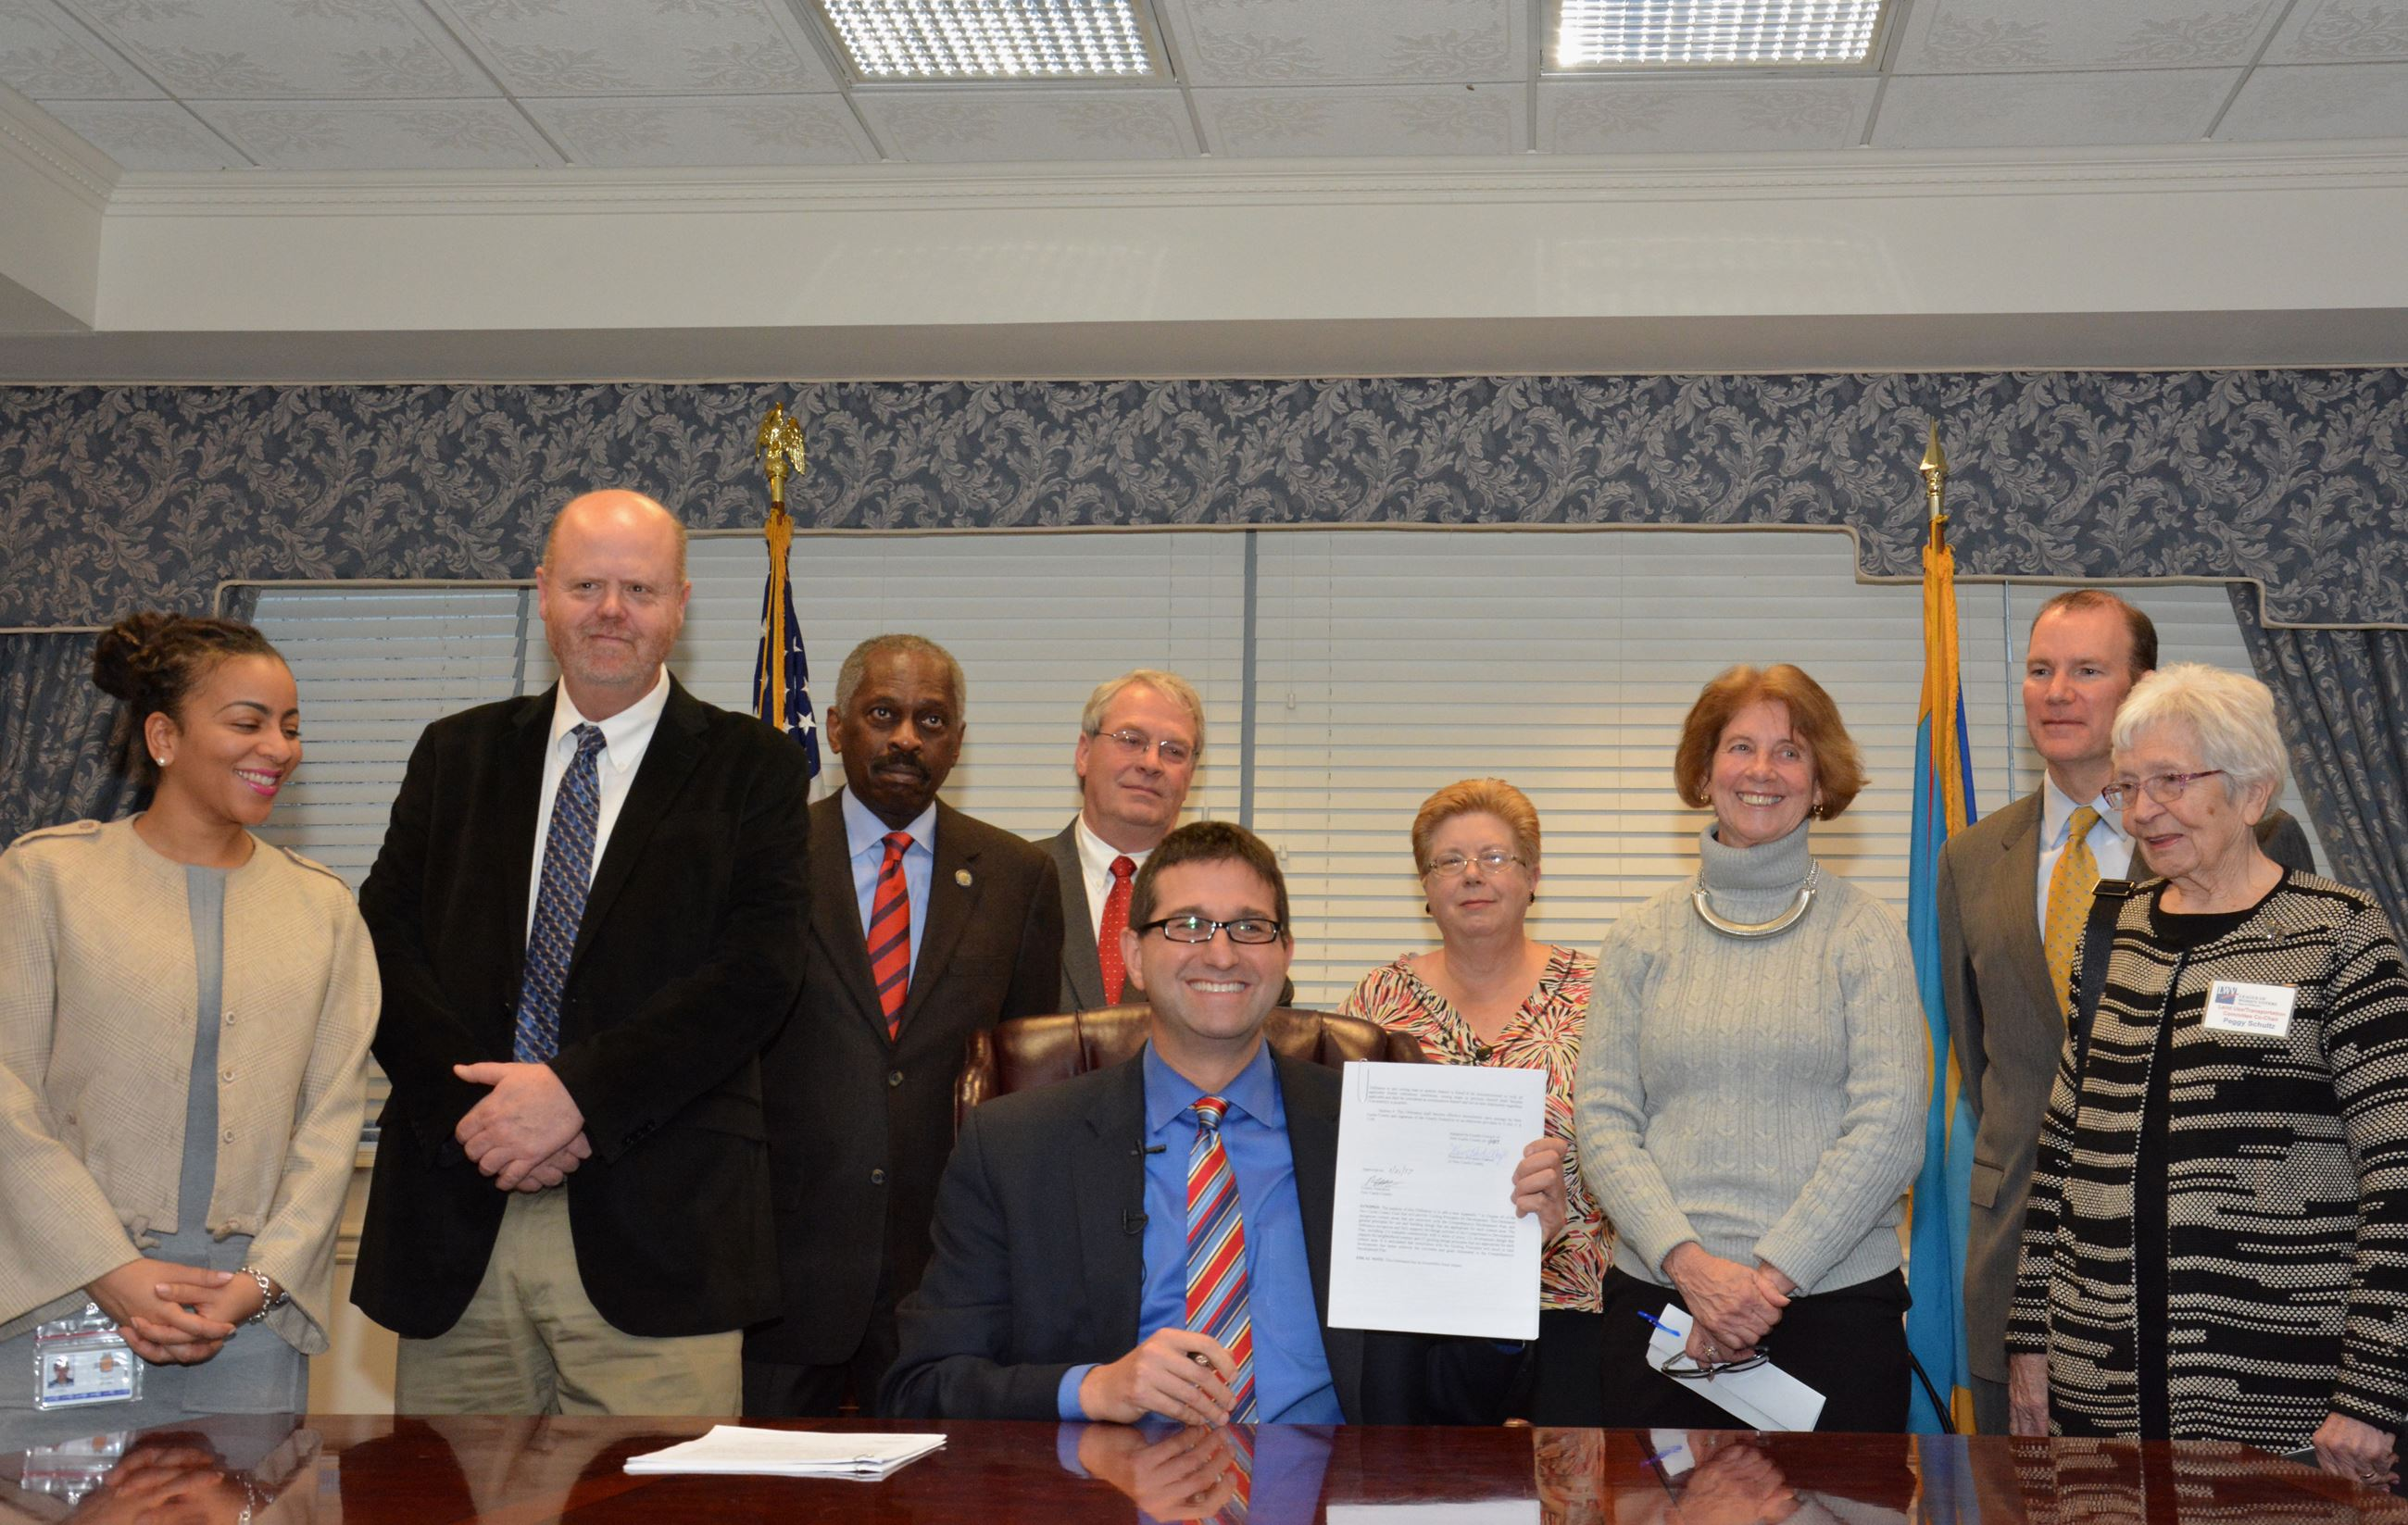 Signing New Land Use Legislation 1-17